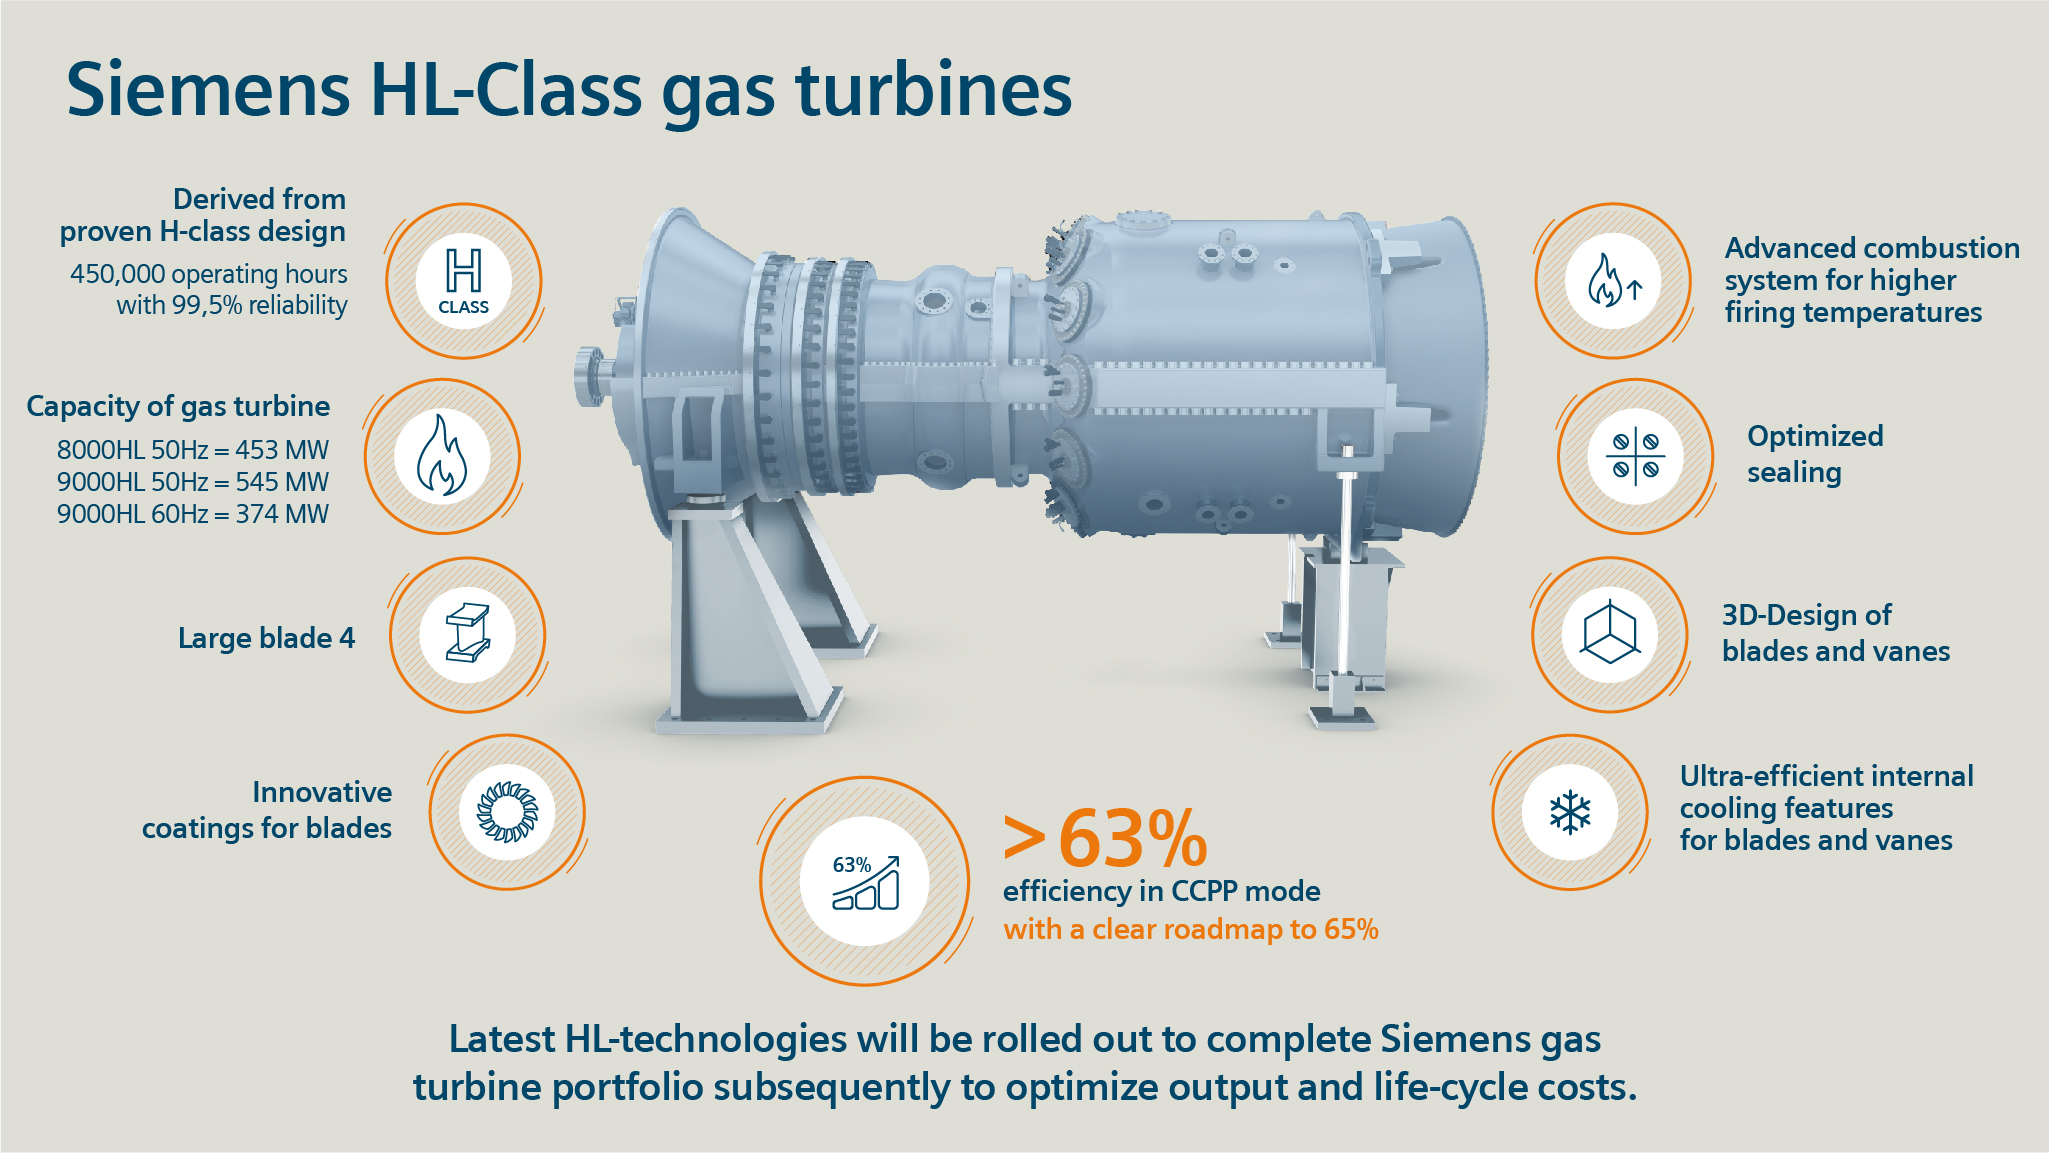 Siemens announces technology push for higher power plant